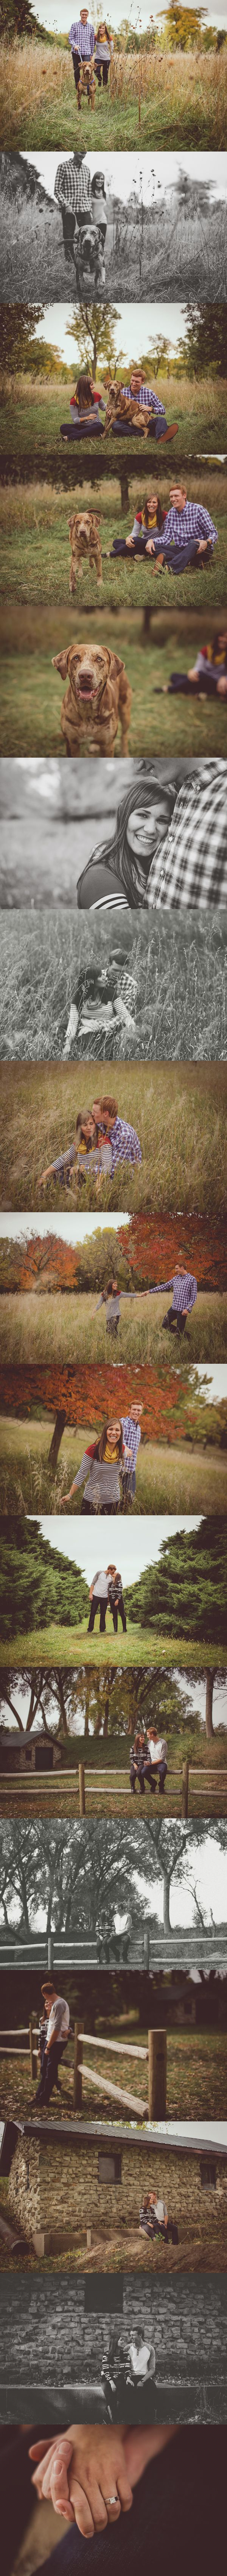 'Kaitlin & Jordan (and their dog Chevy!) share a love of being outdoors so Pioneers Park seemed like the perfect place to capture their love on a beautiful October day! They will celebrate their marriage this summer.' - Ashley Crawford Photography   Ashley Crawford Photography